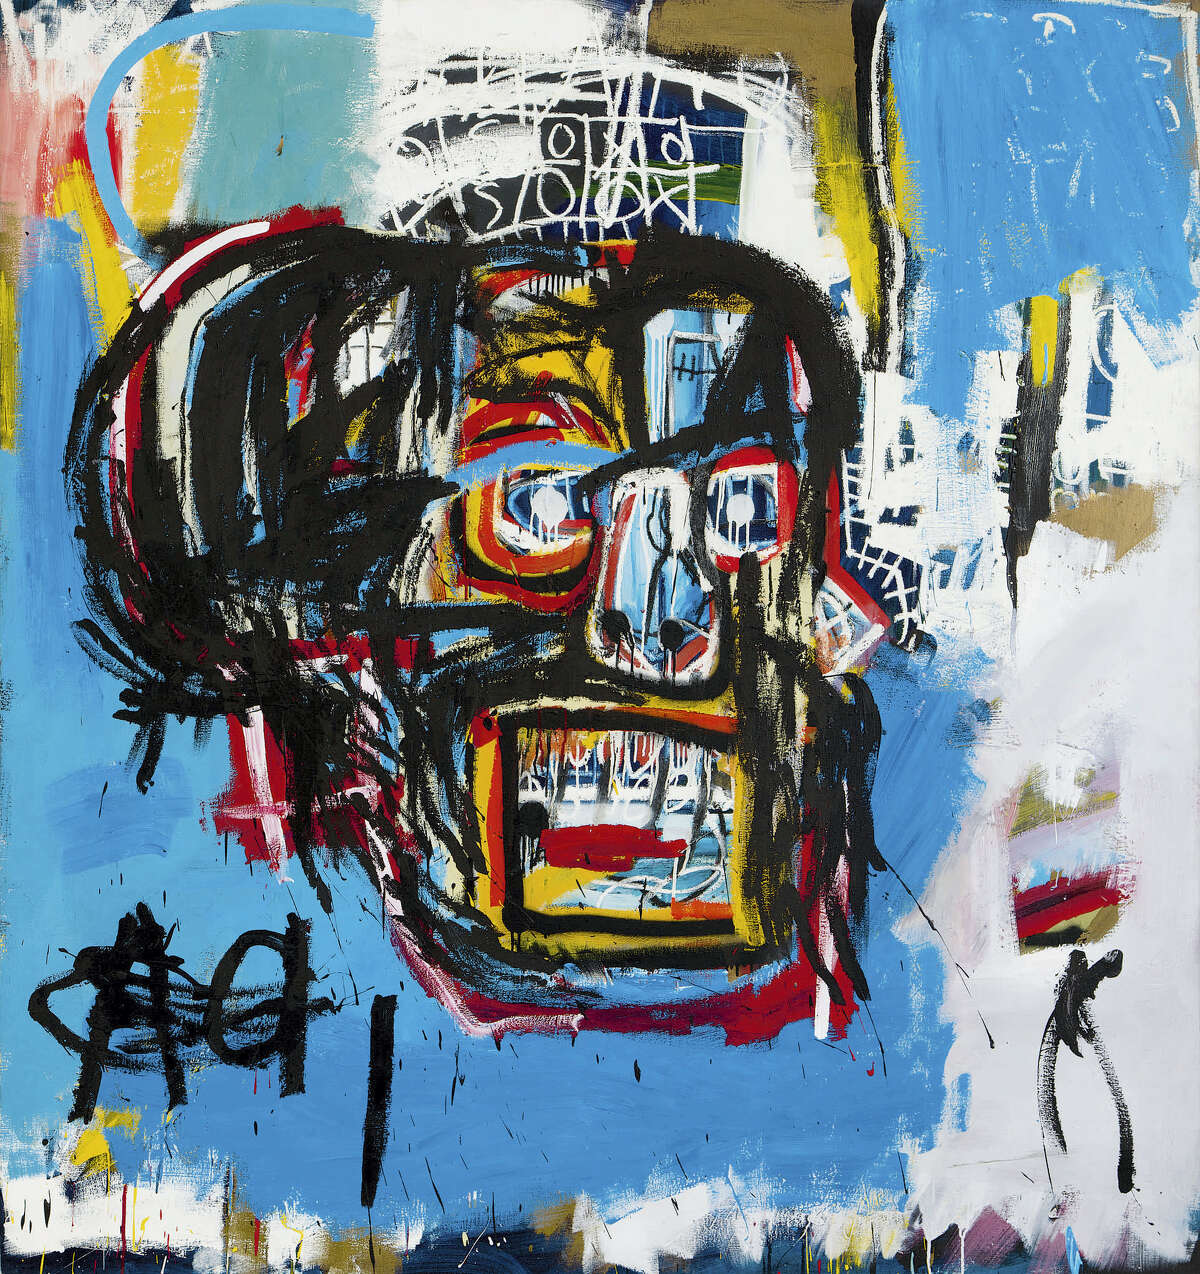 """This undated photo provided by Sotheby's shows Jean-Michel Basquiat's Masterpiece """"Untitled."""" Sotheby's said the sale of the artwork Thursday, May 18, 2017, in Manhattan was an auction record for the artist. It also set a record price for an American artist at auction. The 1982 painting depicts a face in the shape of a skull."""